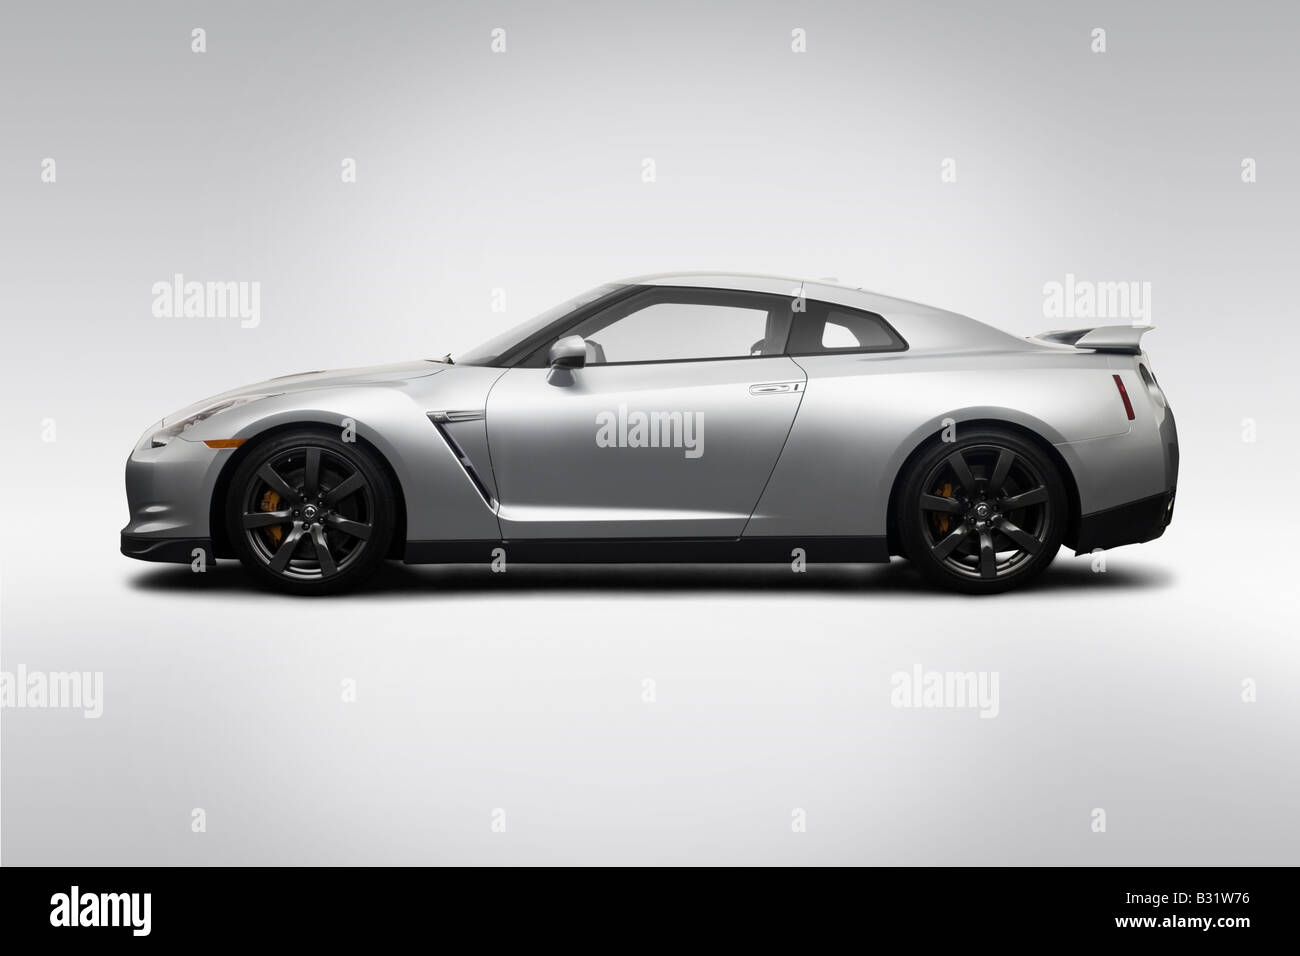 Awesome 2009 Nissan GT R In Silver   Drivers Side Profile   Stock Image